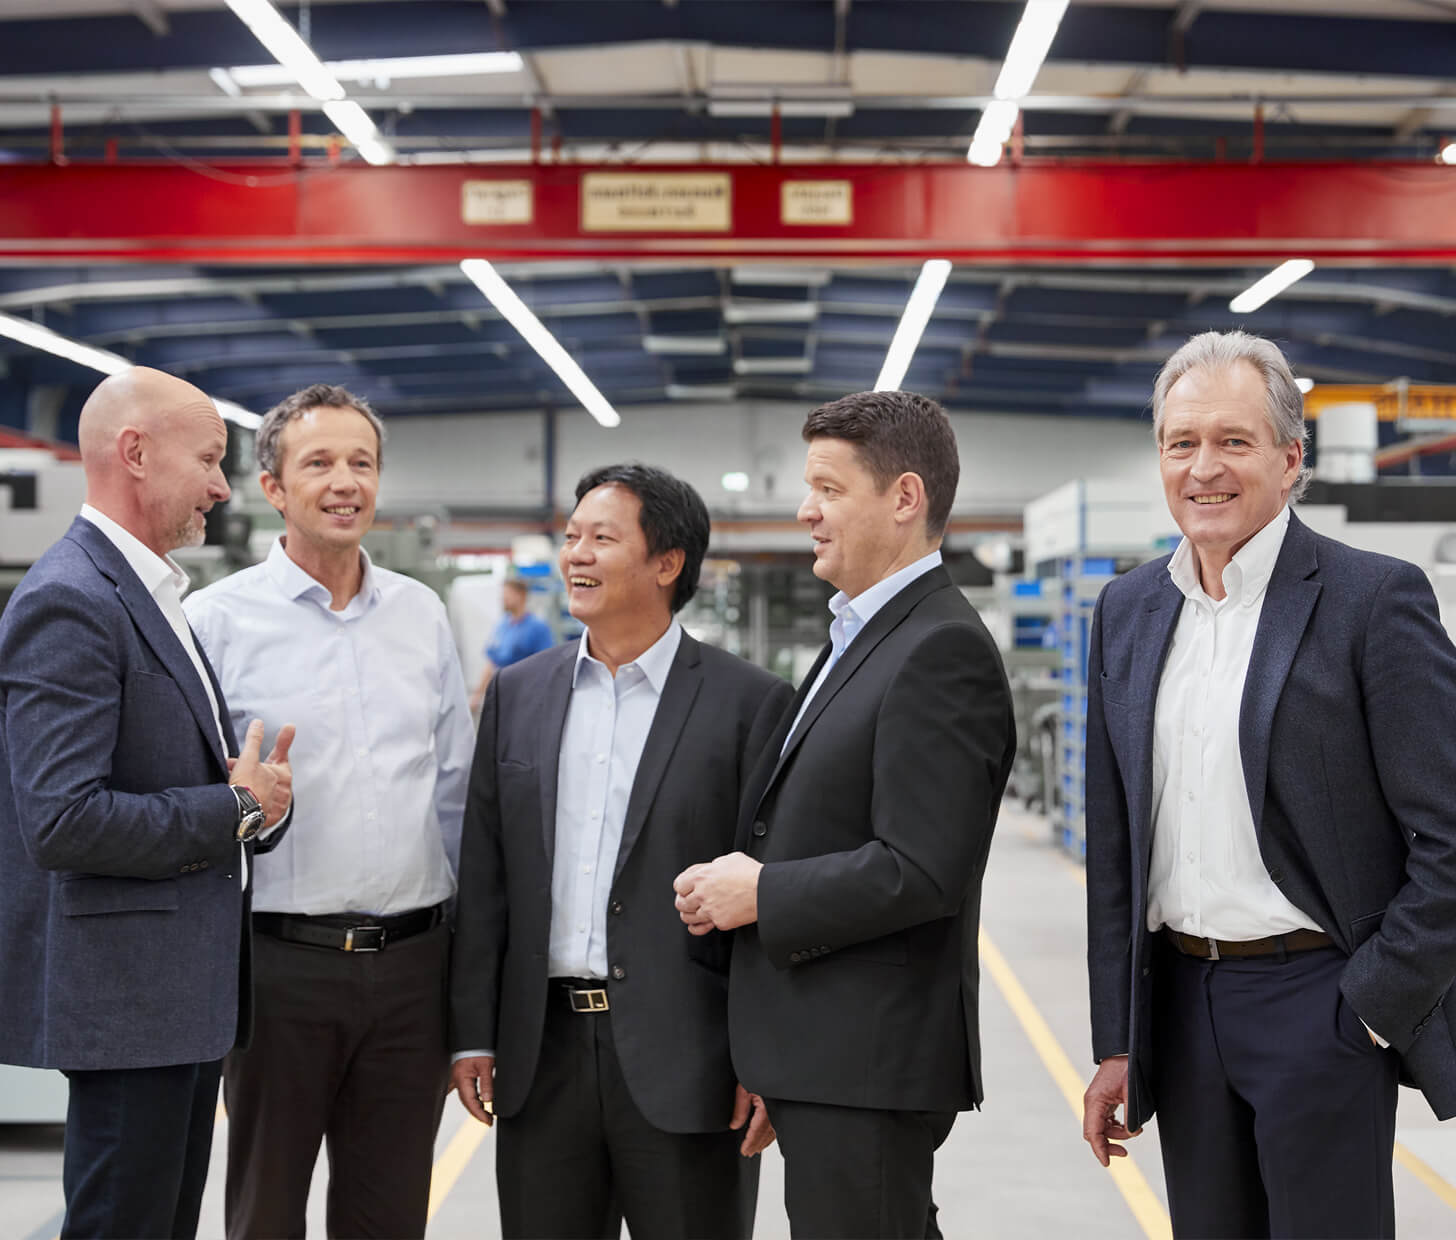 The managing directors of the hoist manufacturer J.D. Neuhaus